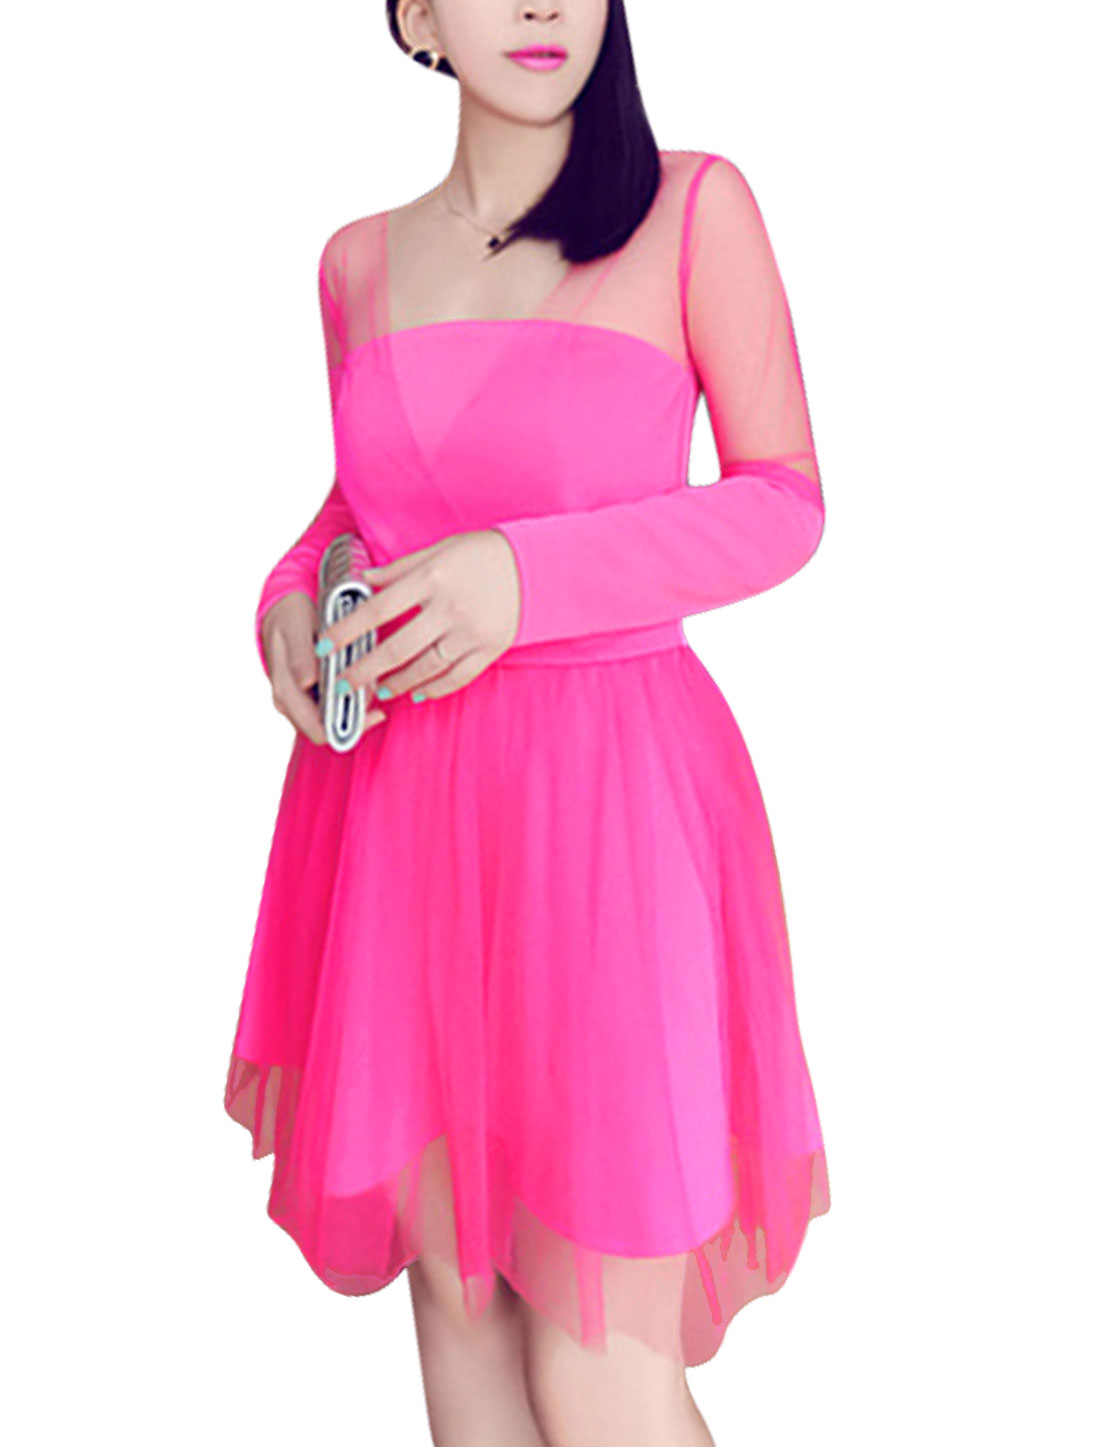 Lady Square Neck Layered Hem Spliced Design Sexy Mesh Dress Pink M